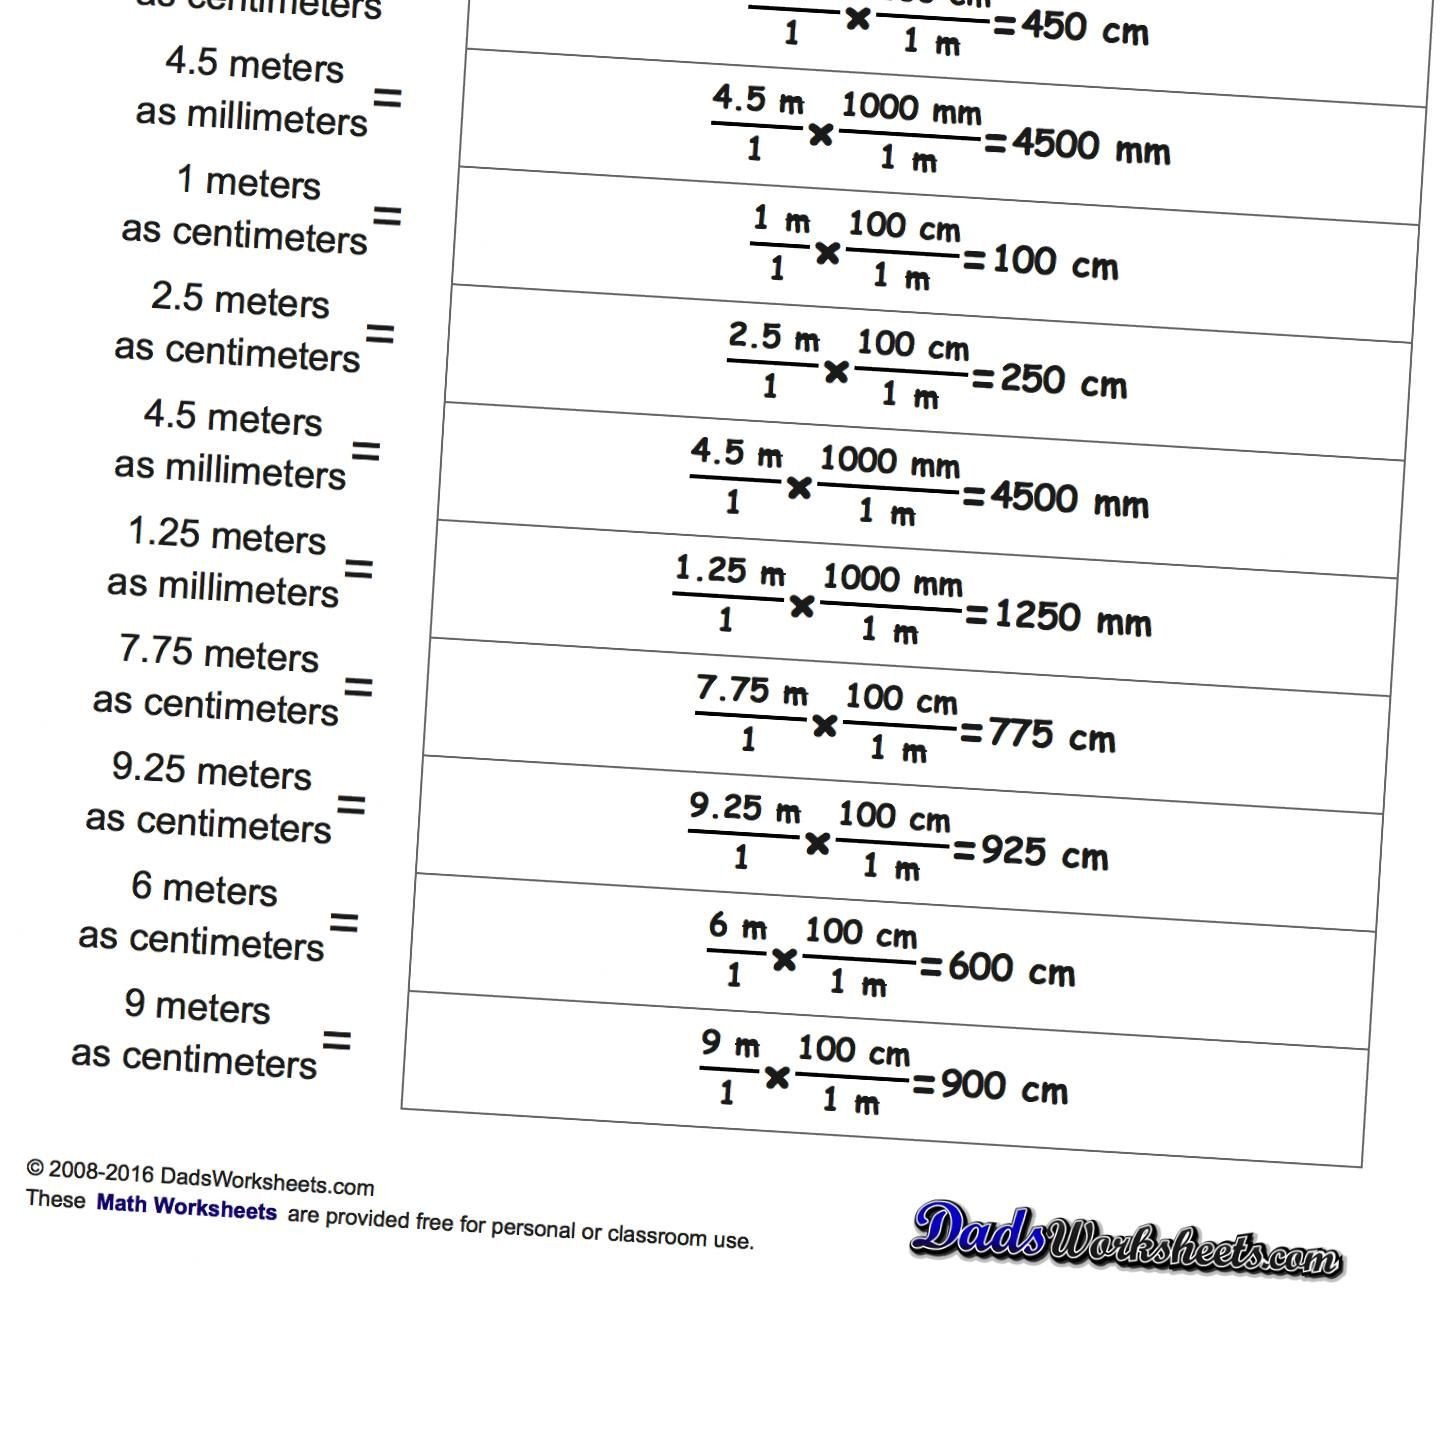 Metric and Customary Conversions Worksheets Unit Conversion Worksheet Physics